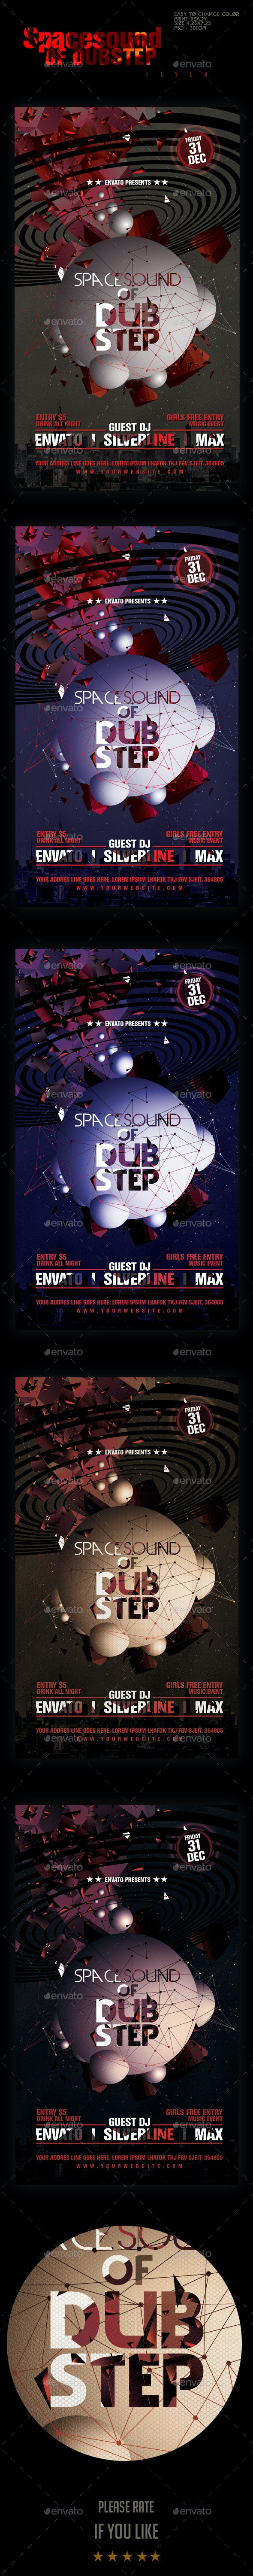 Space-Sound Dub-Step party Flyer Template - Clubs & Parties Events